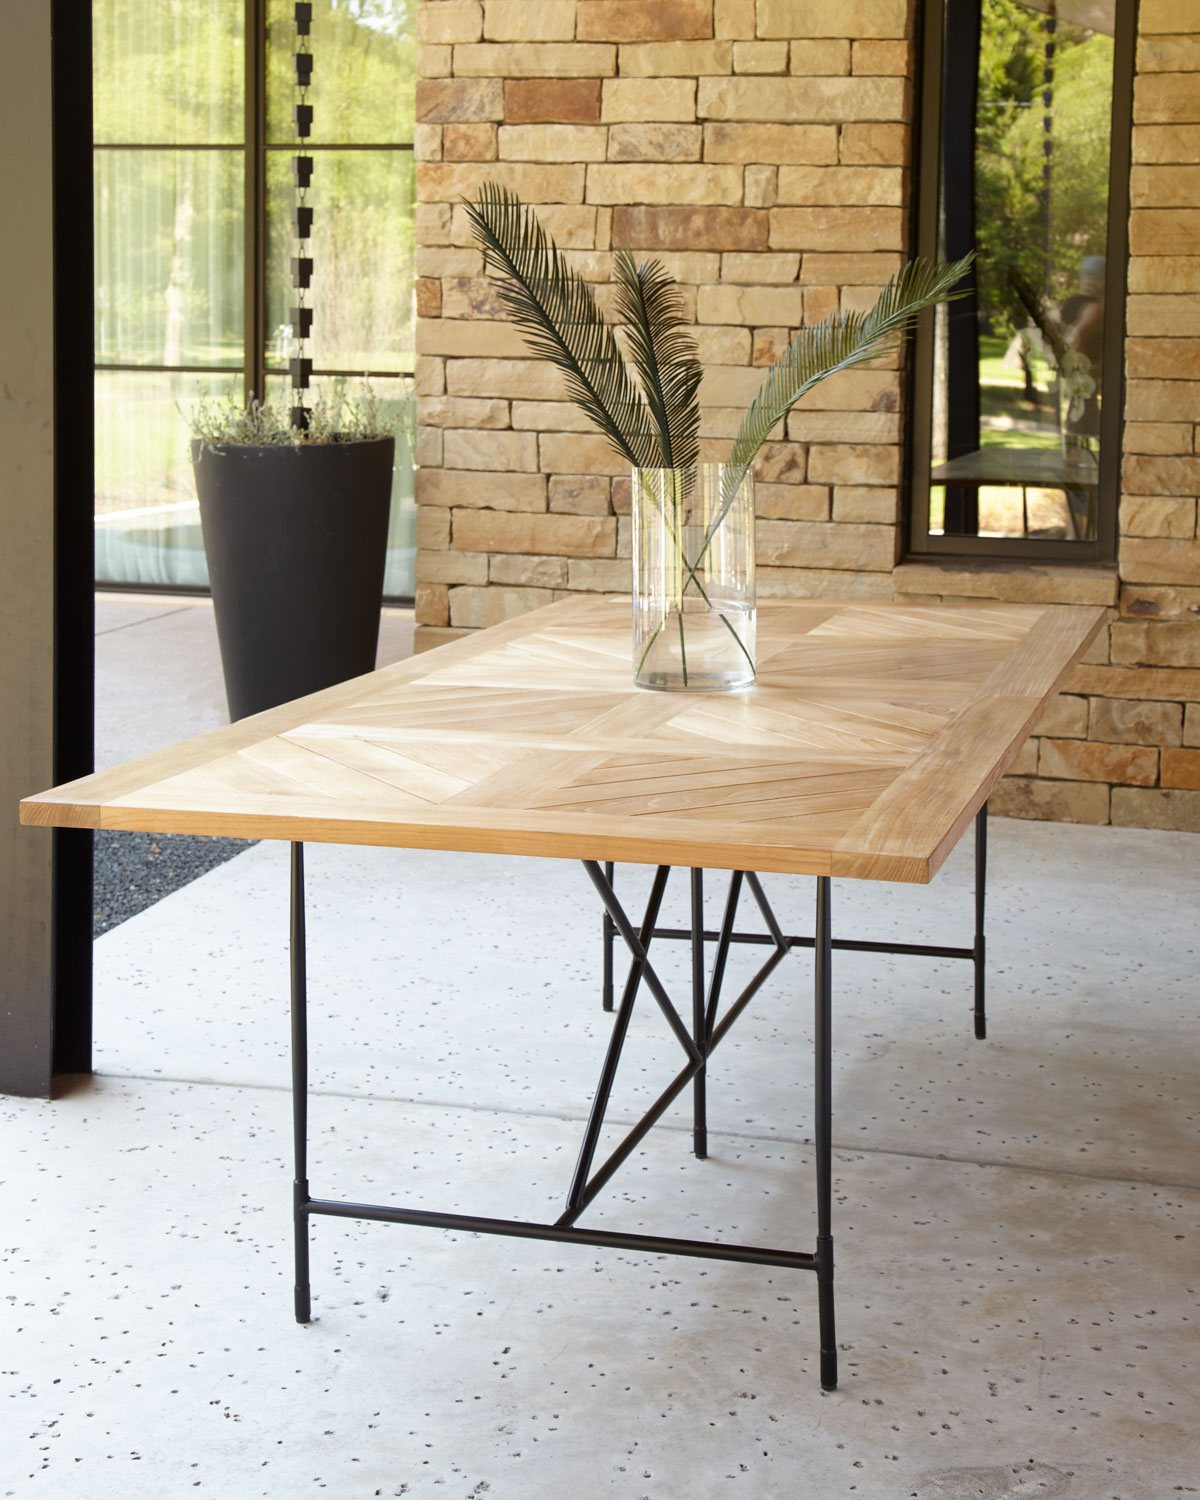 """Avery Neoclassical 122""""l Outdoor Dining Table Inside Most Current Avery Rectangular Dining Tables (View 13 of 25)"""